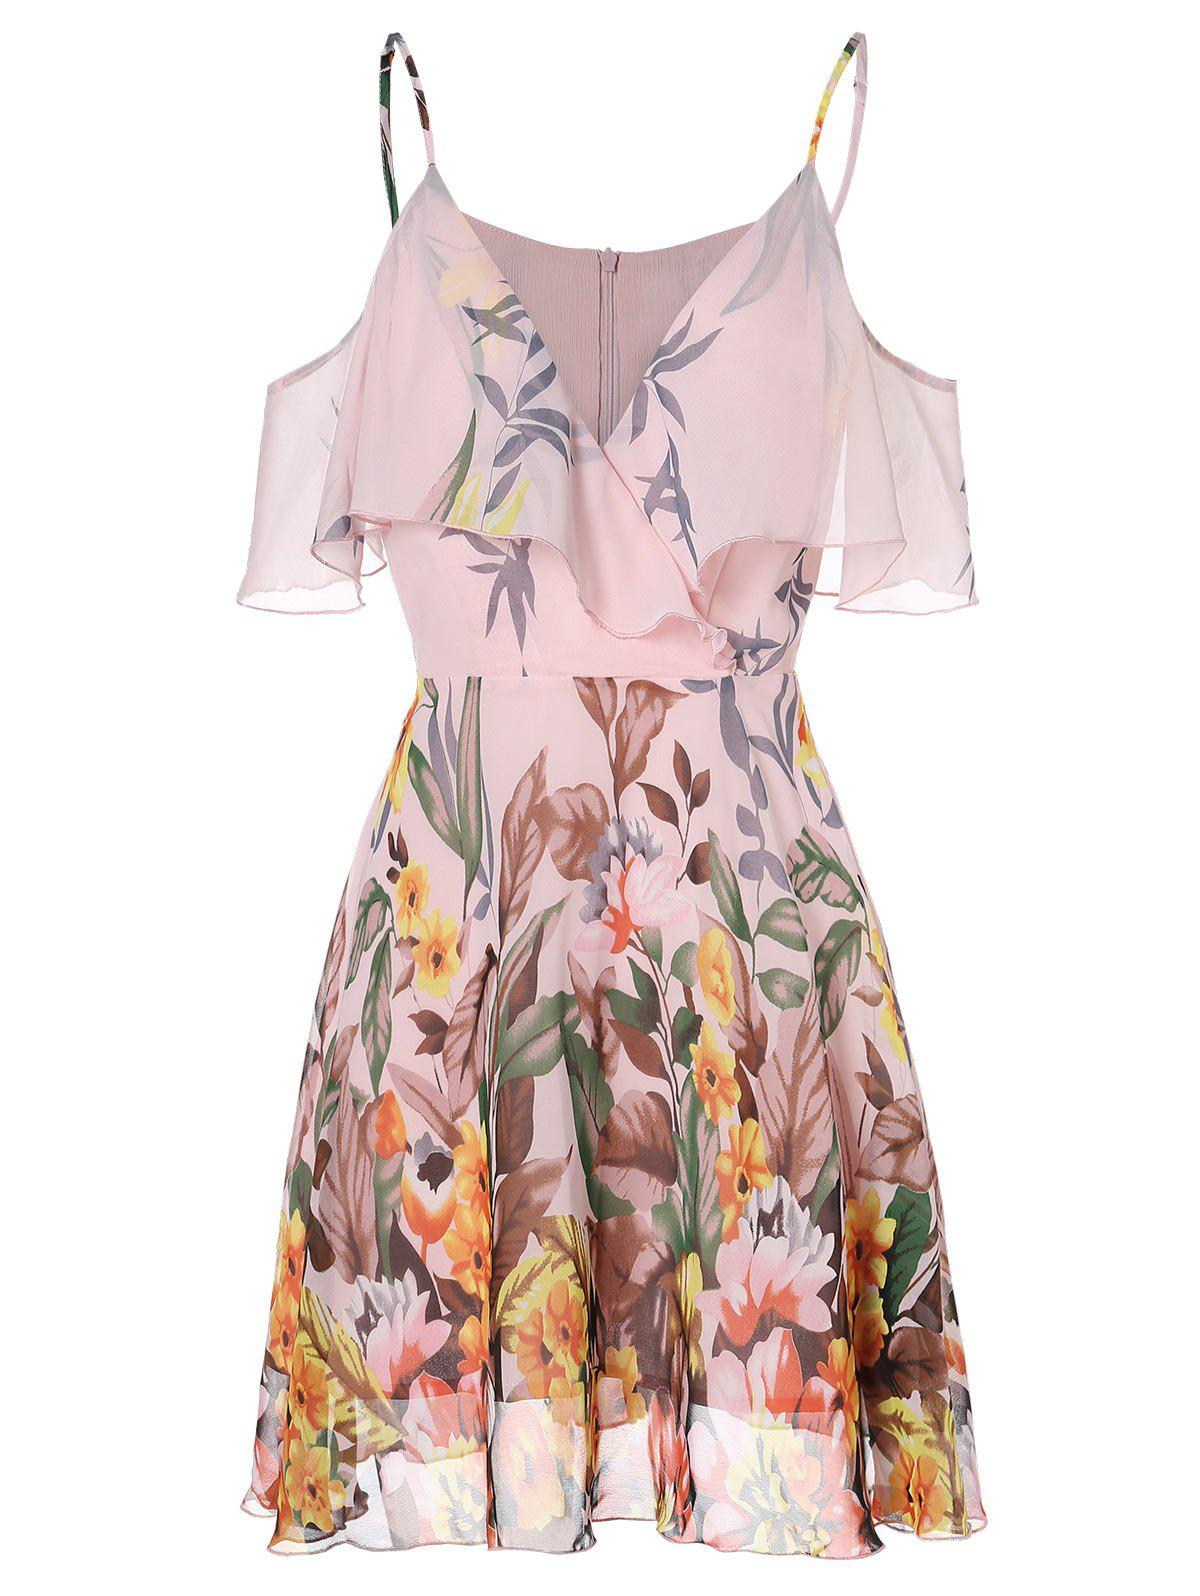 Discount Spaghetti Strap Open Shoulder Floral Print Dress